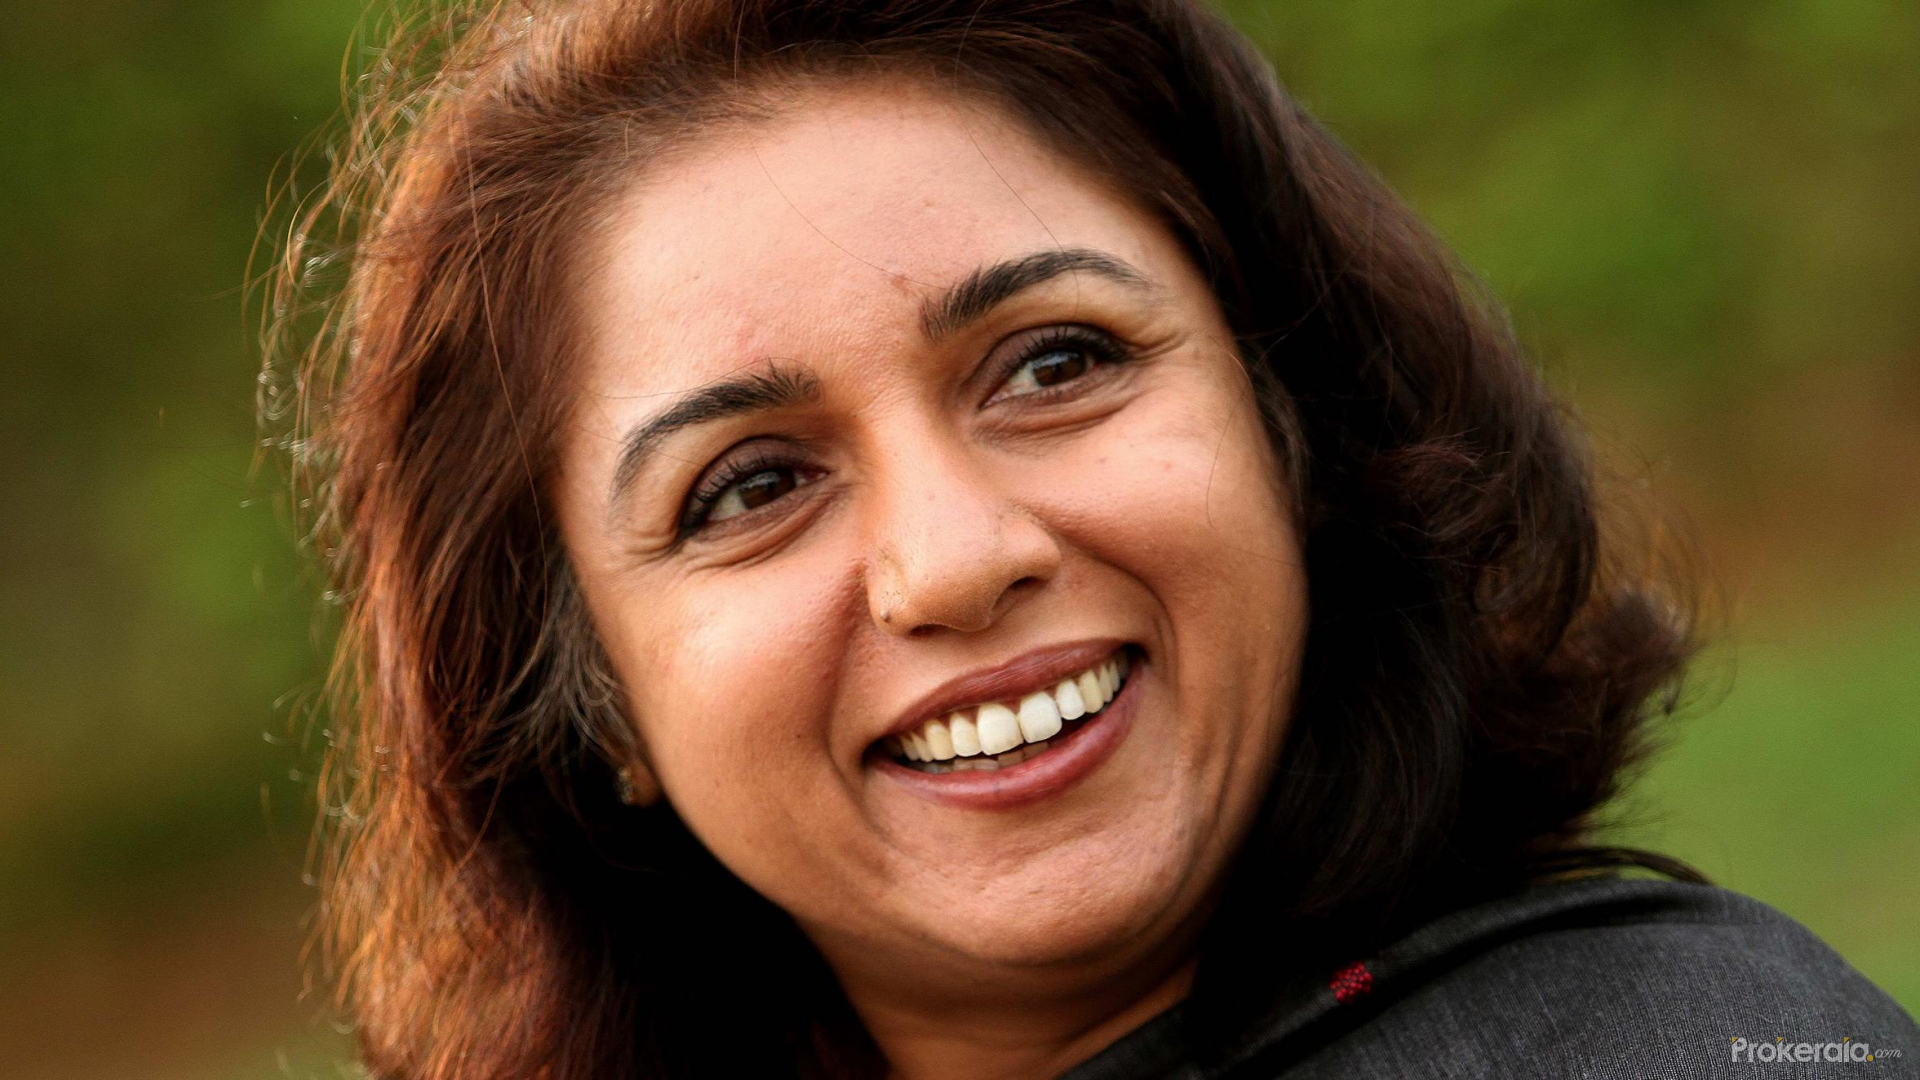 Related Pictures mallu aunty kundi photos pdf search engine